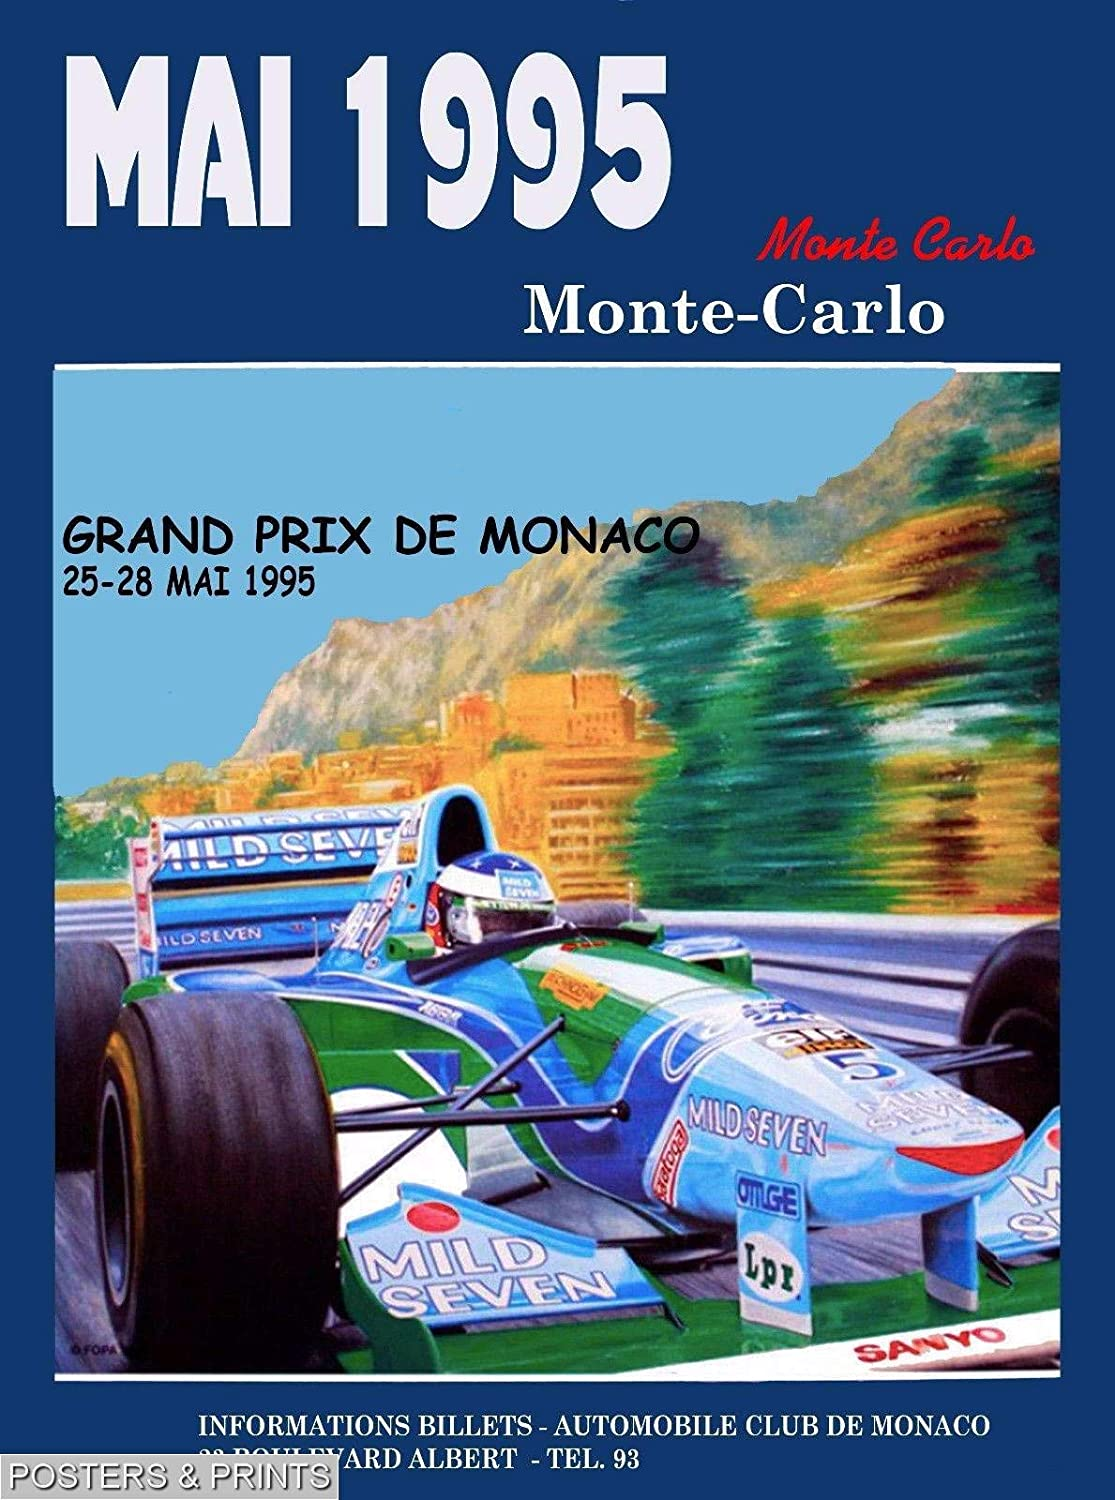 amazon com designomite 302546 1995 53rd monaco grand prix automobile race car advertisement vintage decor wall 16x12 poster print posters prints designomite 302546 1995 53rd monaco grand prix automobile race car advertisement vintage decor wall 16x12 poster print